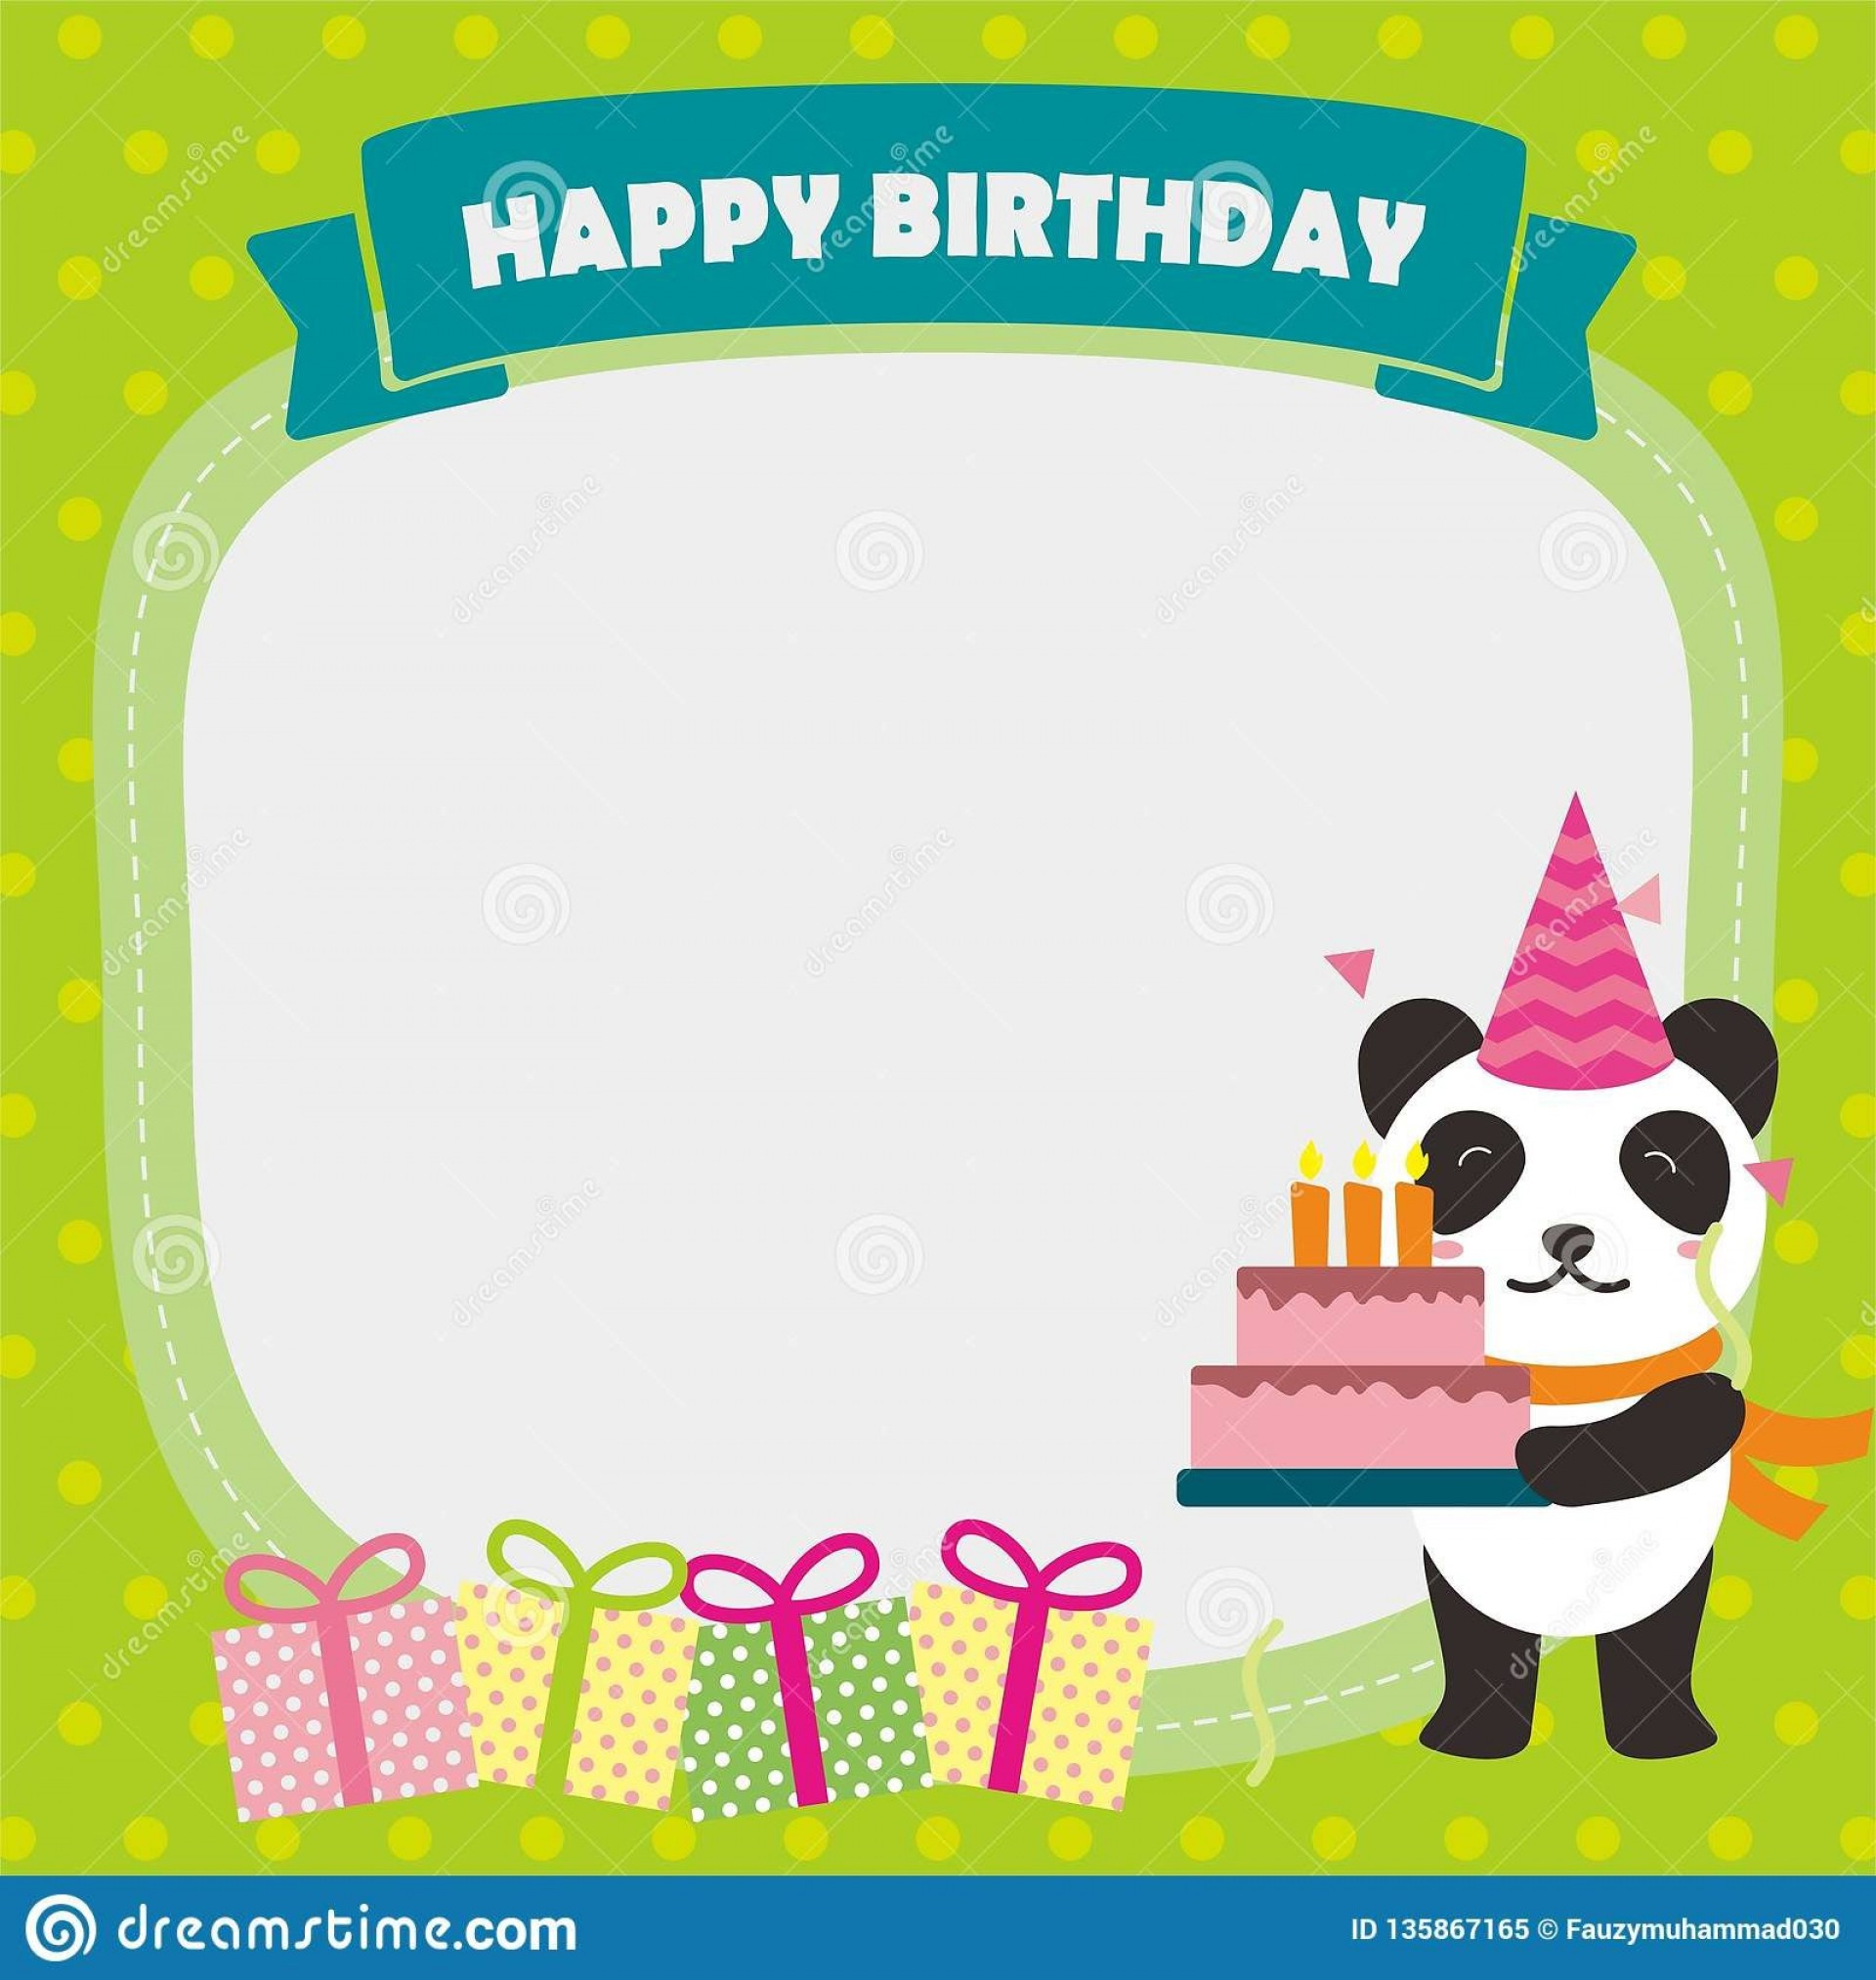 004 Top Template For Birthday Card Highest Clarity  Happy Invitation1920